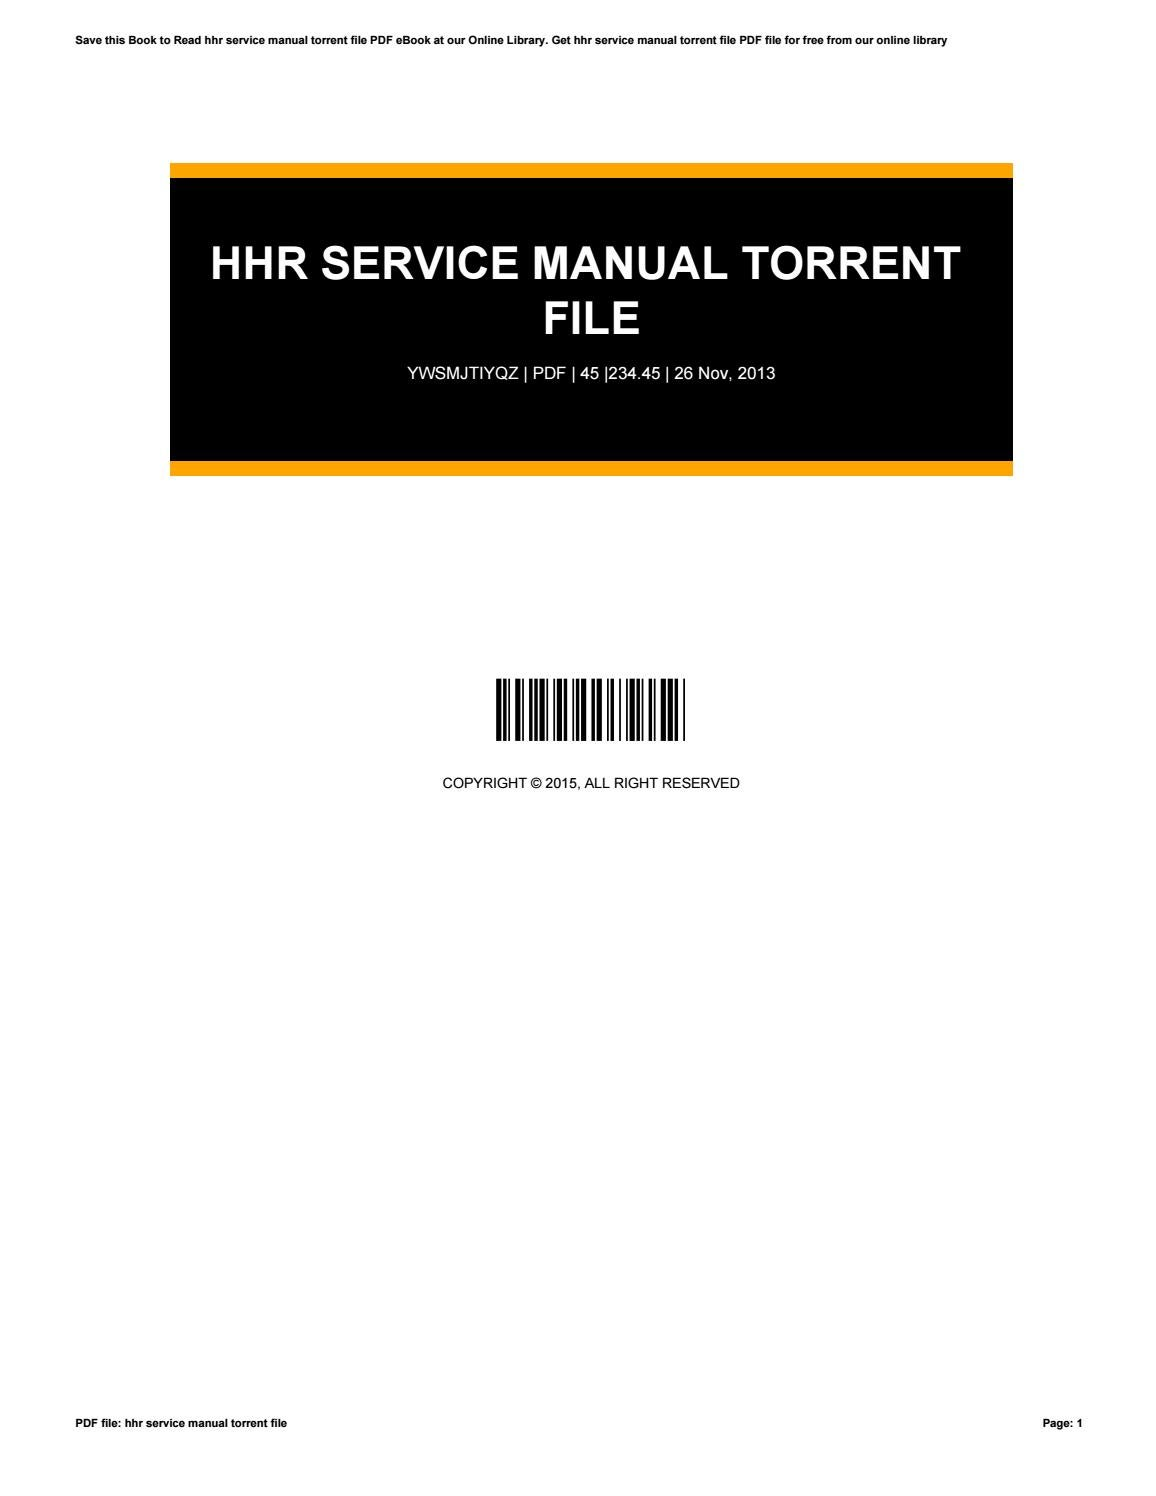 Fan Wiring Diagram Http Wwwfilemountcom 2009 03 Systemwiring Hhr Owners Manual Ebook Array Service Torrent File By Ppetw05 Issuu Rh